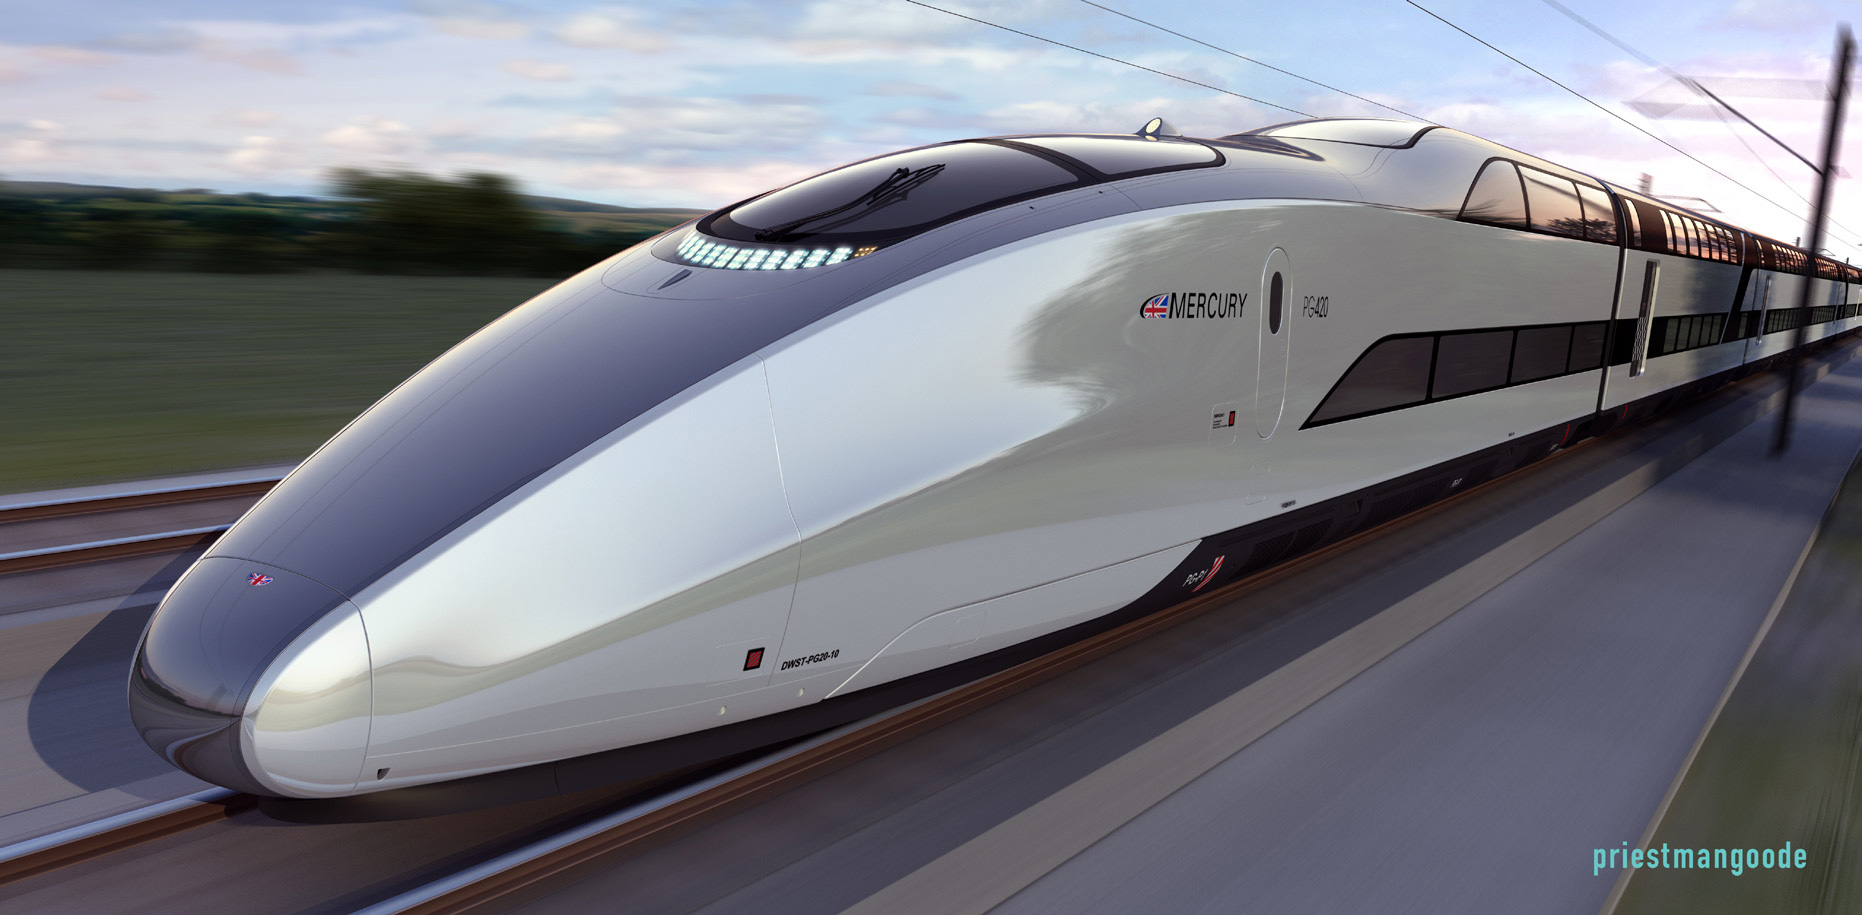 Mercury-Luxury-Train_1